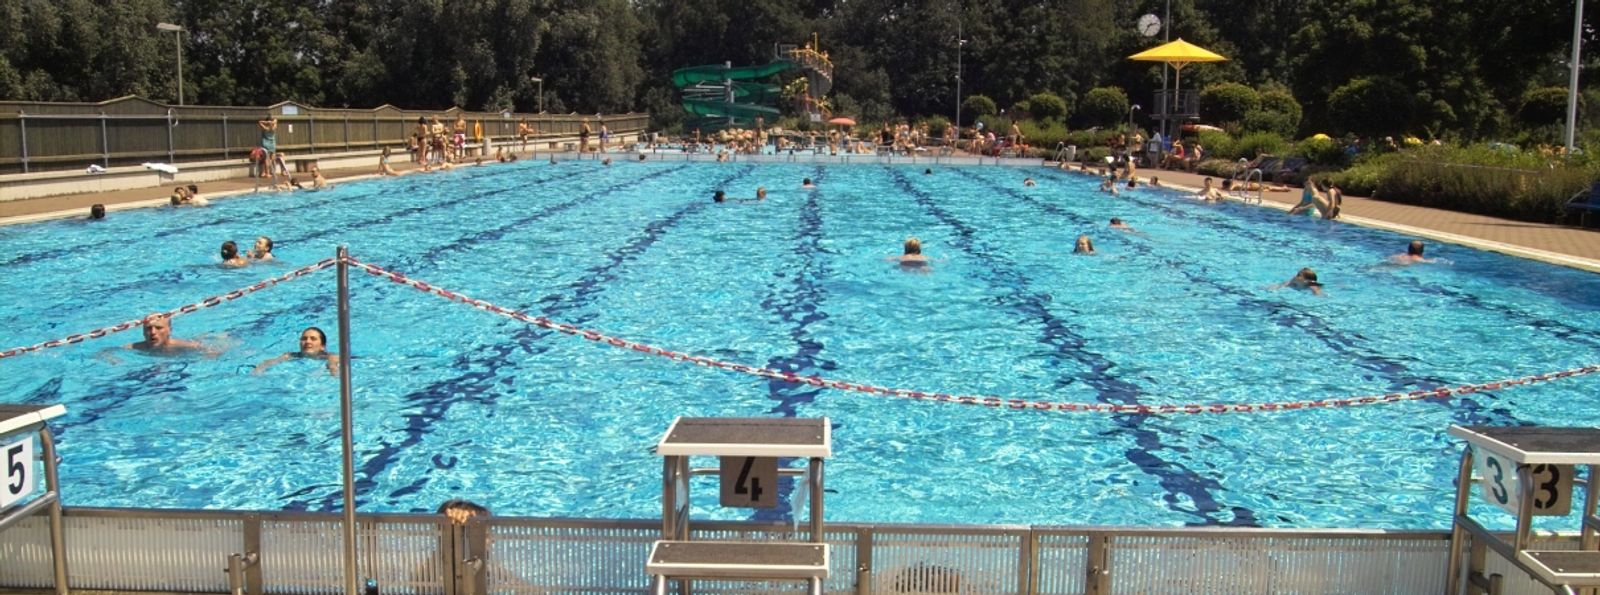 Freibad Singoldwelle (12.07.2020)